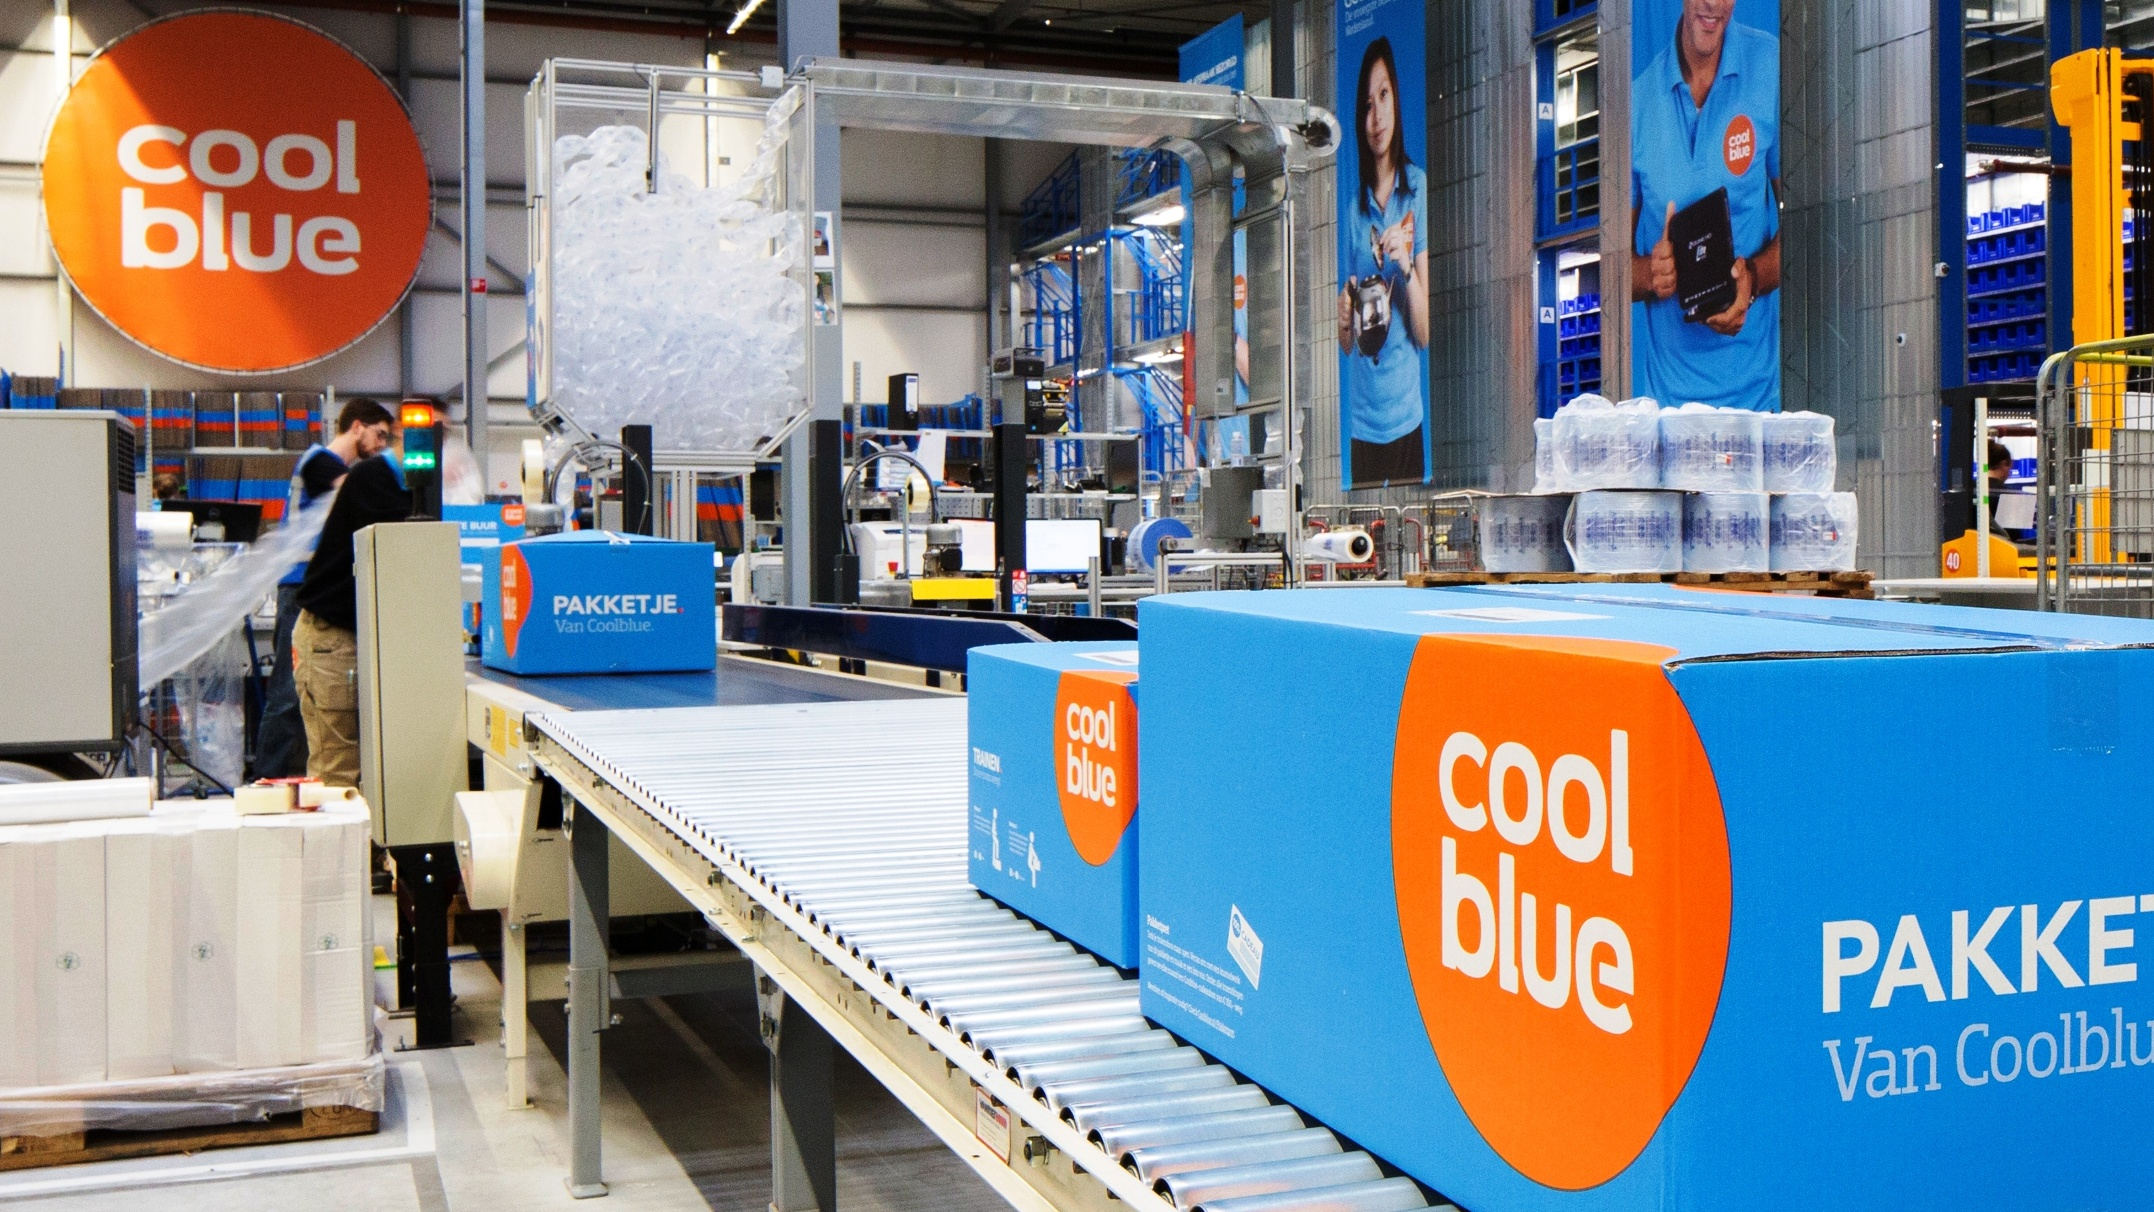 'Coolblue in 2017 op 1 miljard euro omzet'